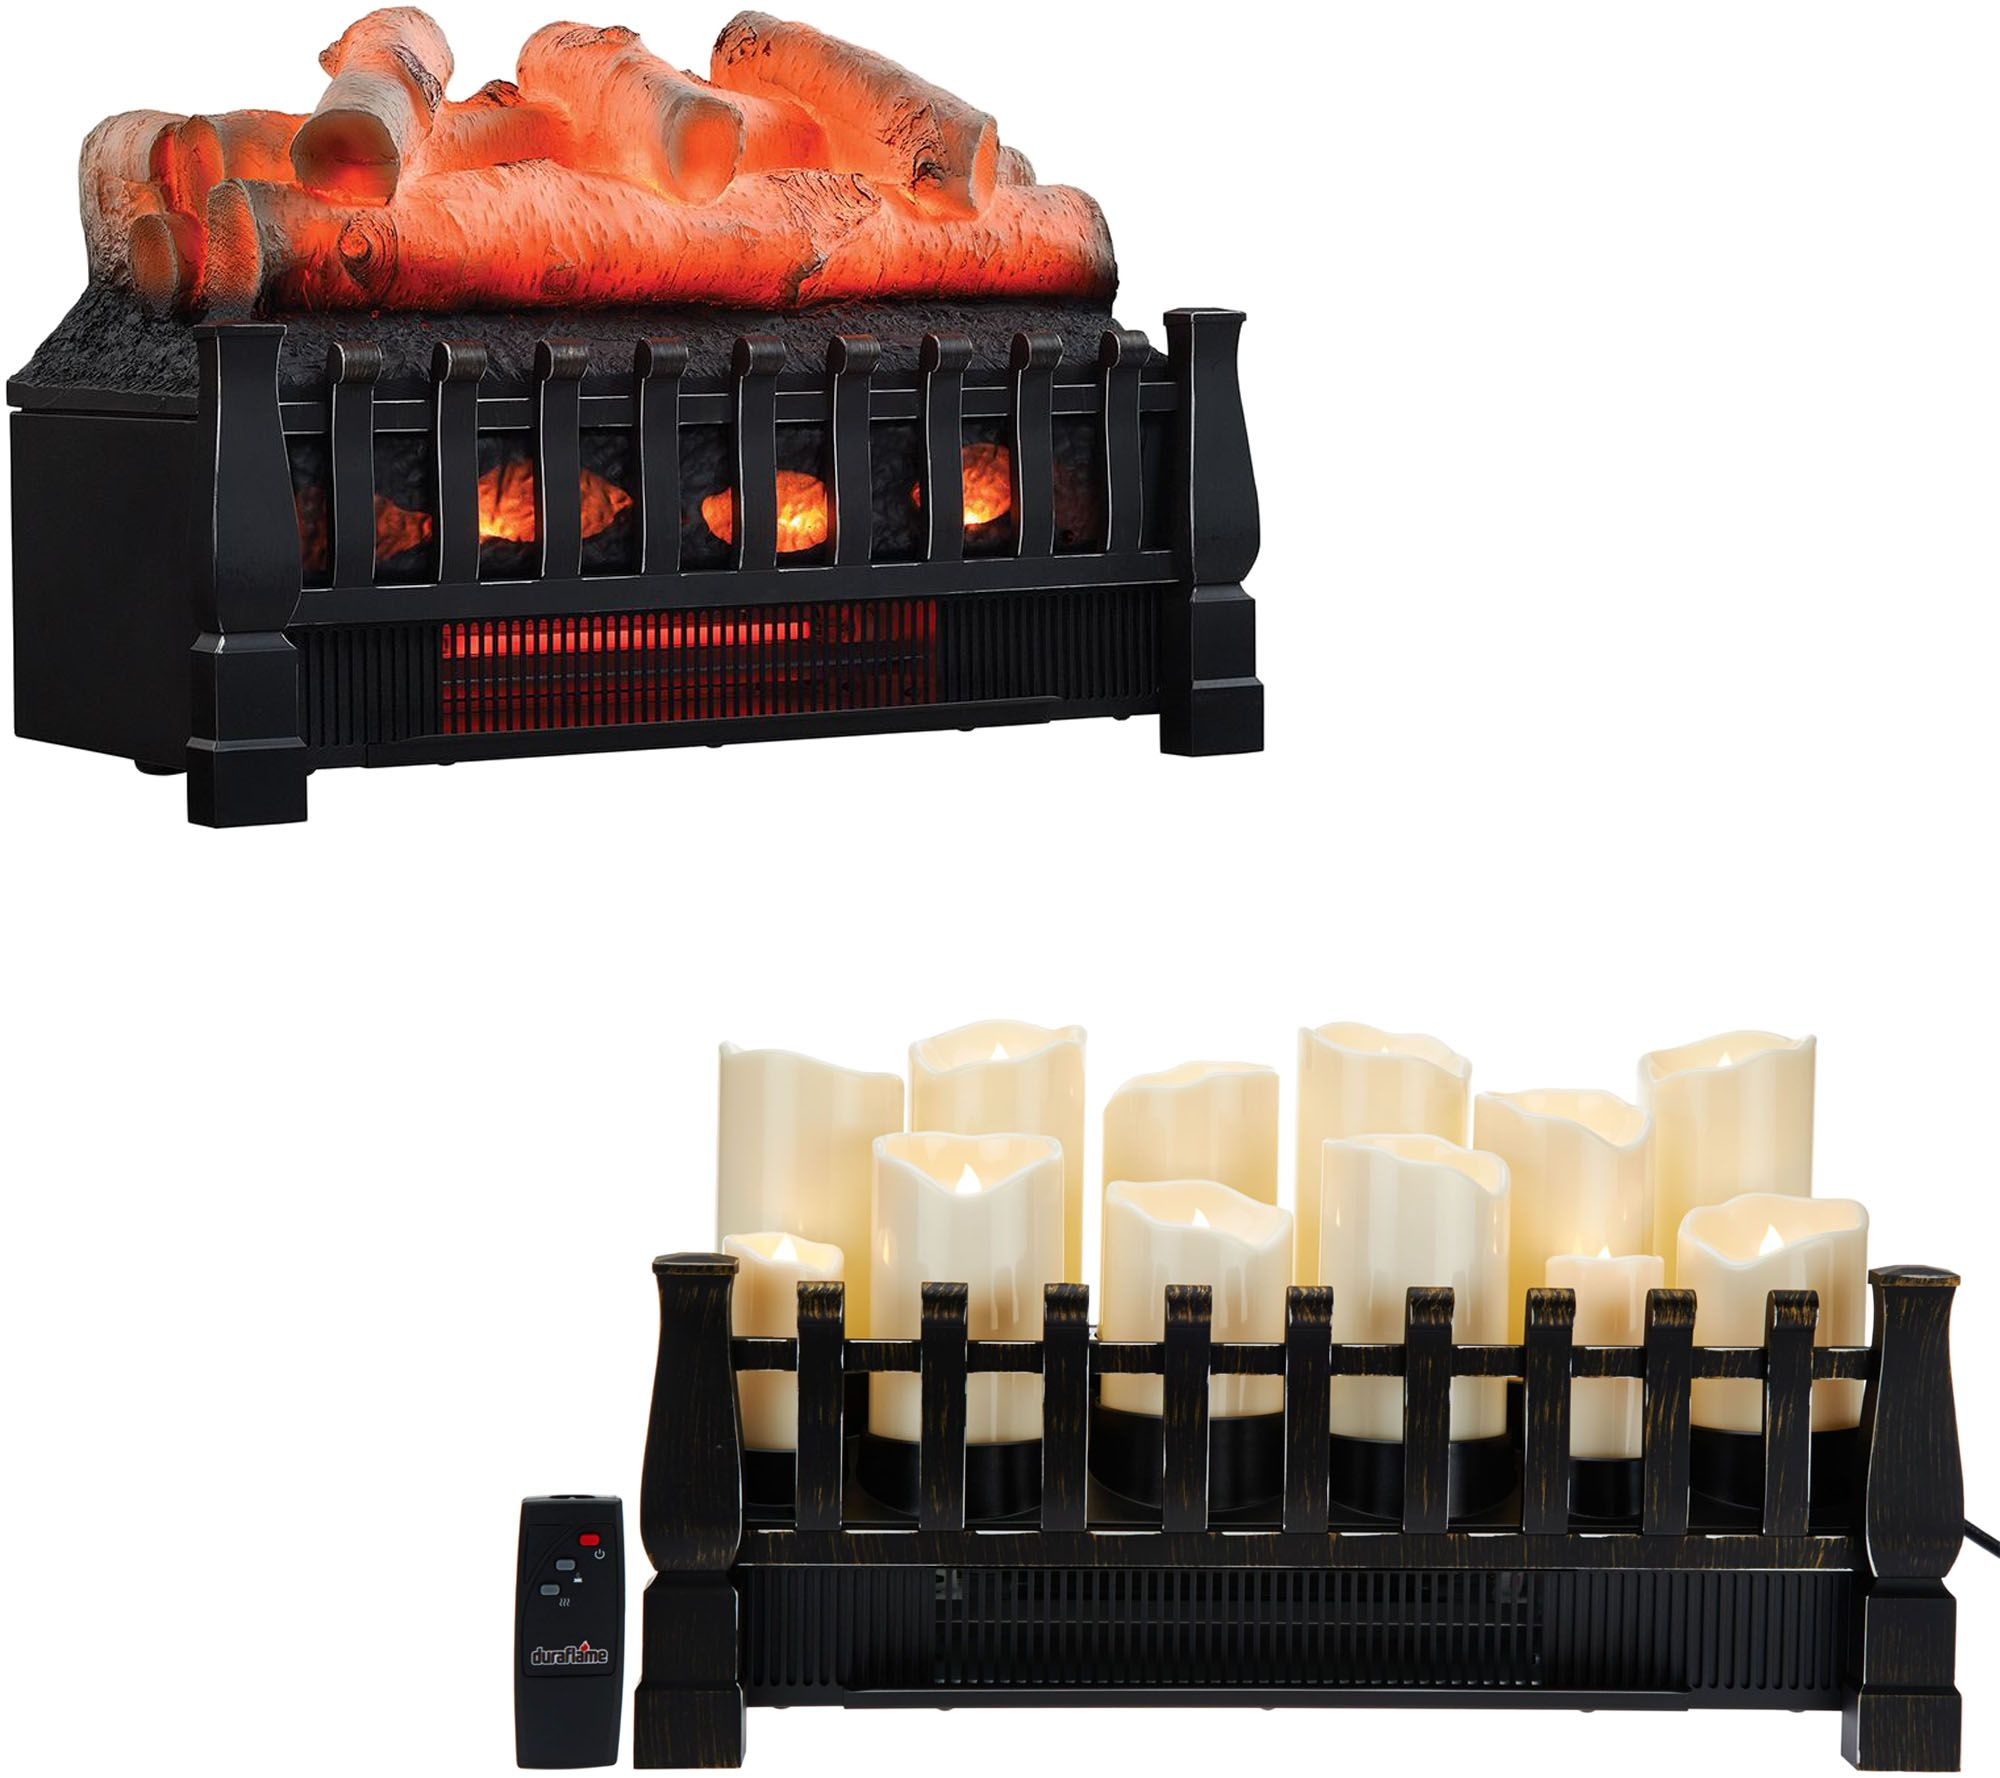 Duraflame Infrared Quartz Heater Fireplace Insert